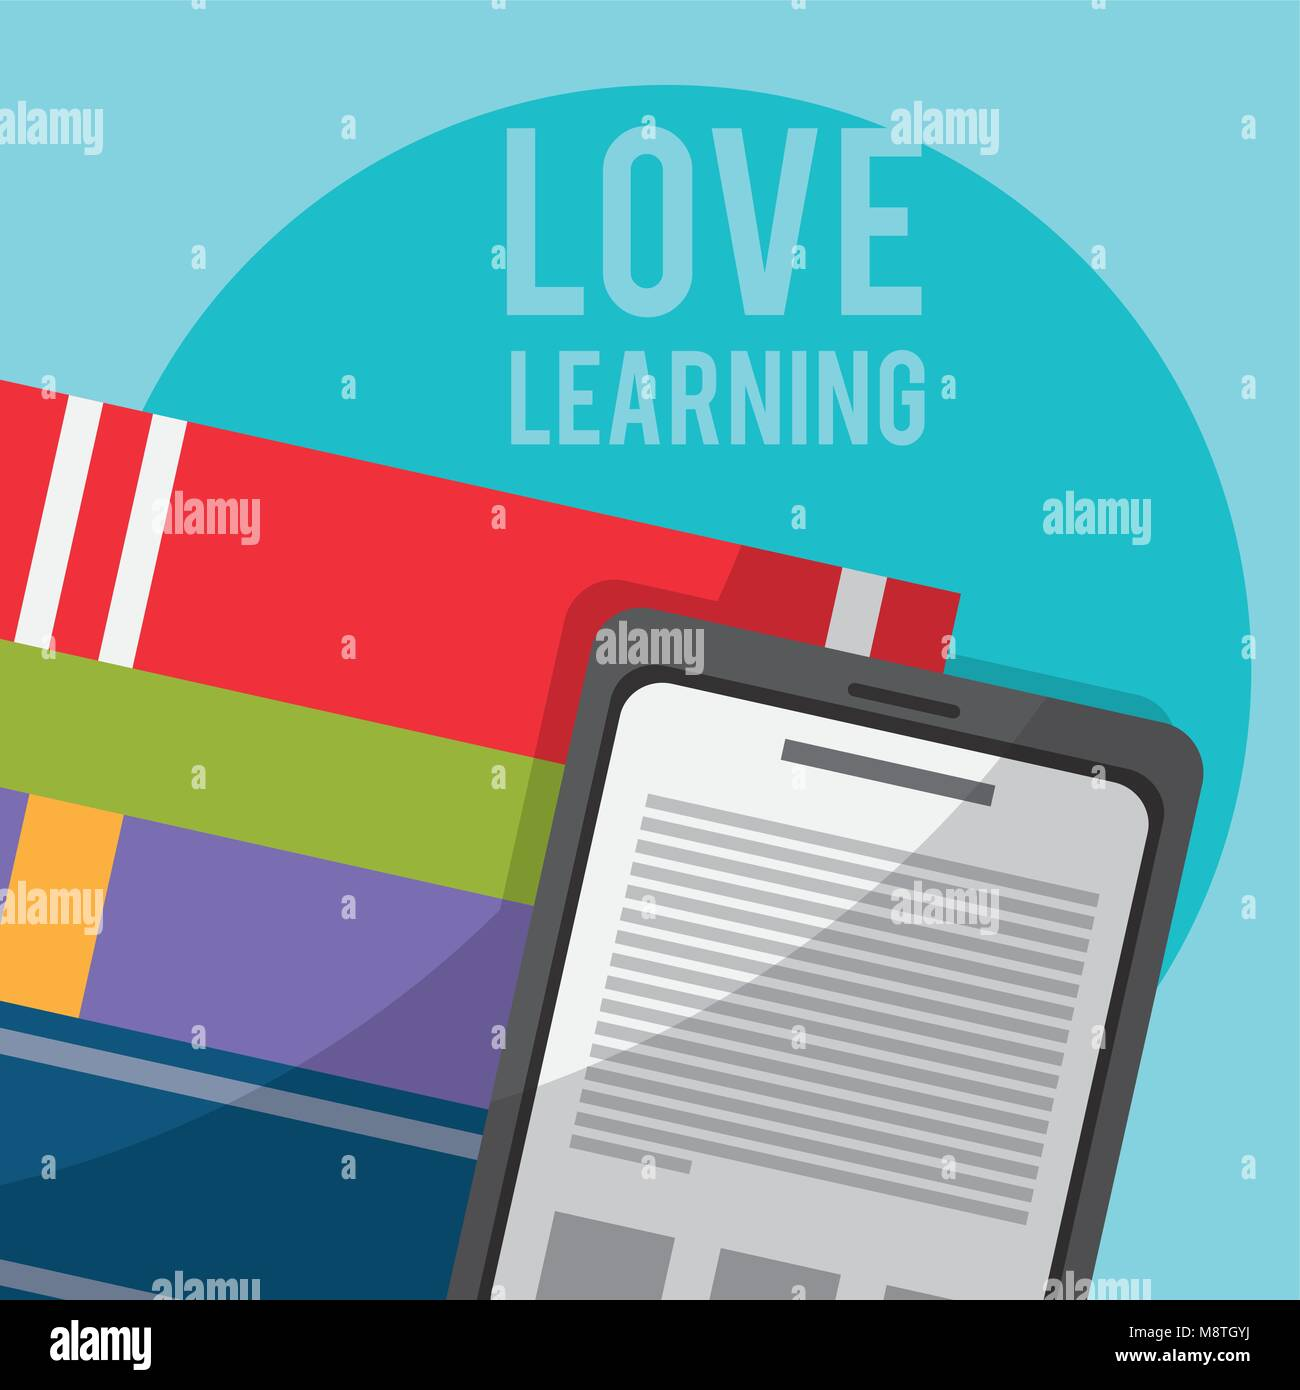 Books and technology - Stock Image